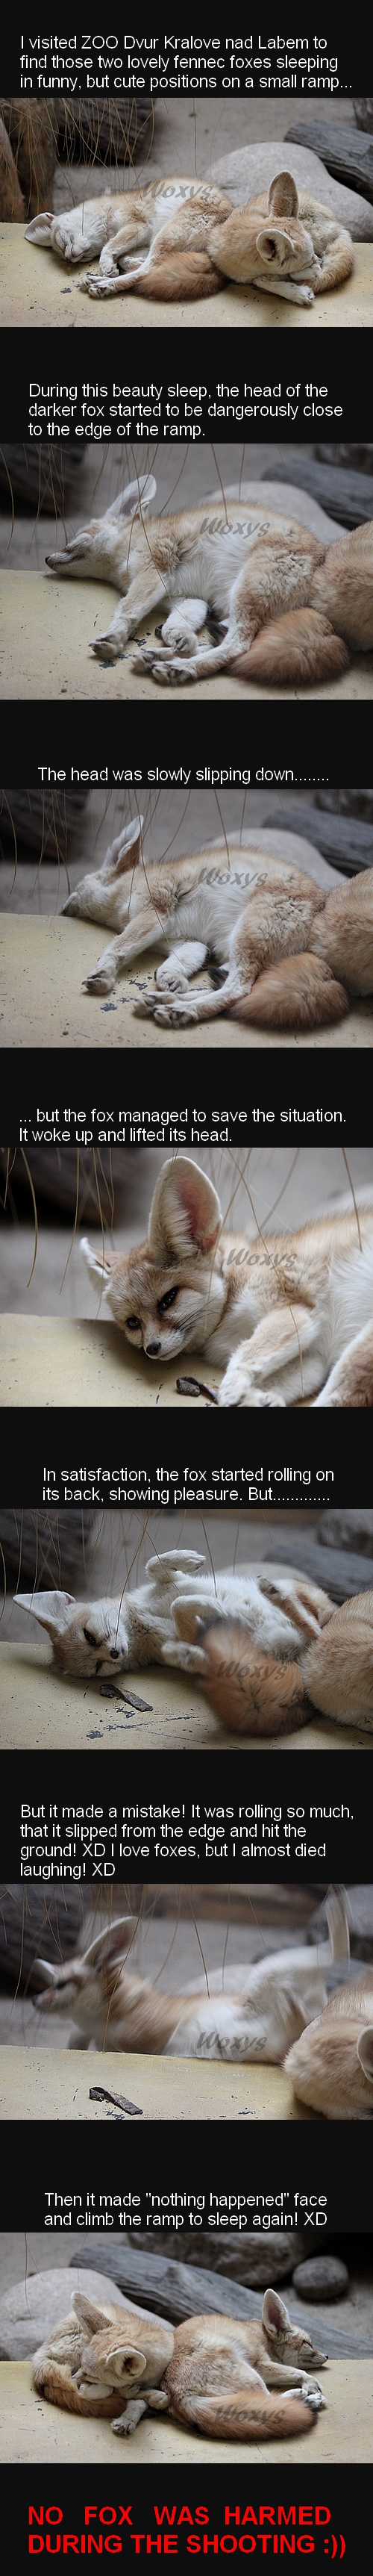 Terrible tragedy of fennec fox by woxys